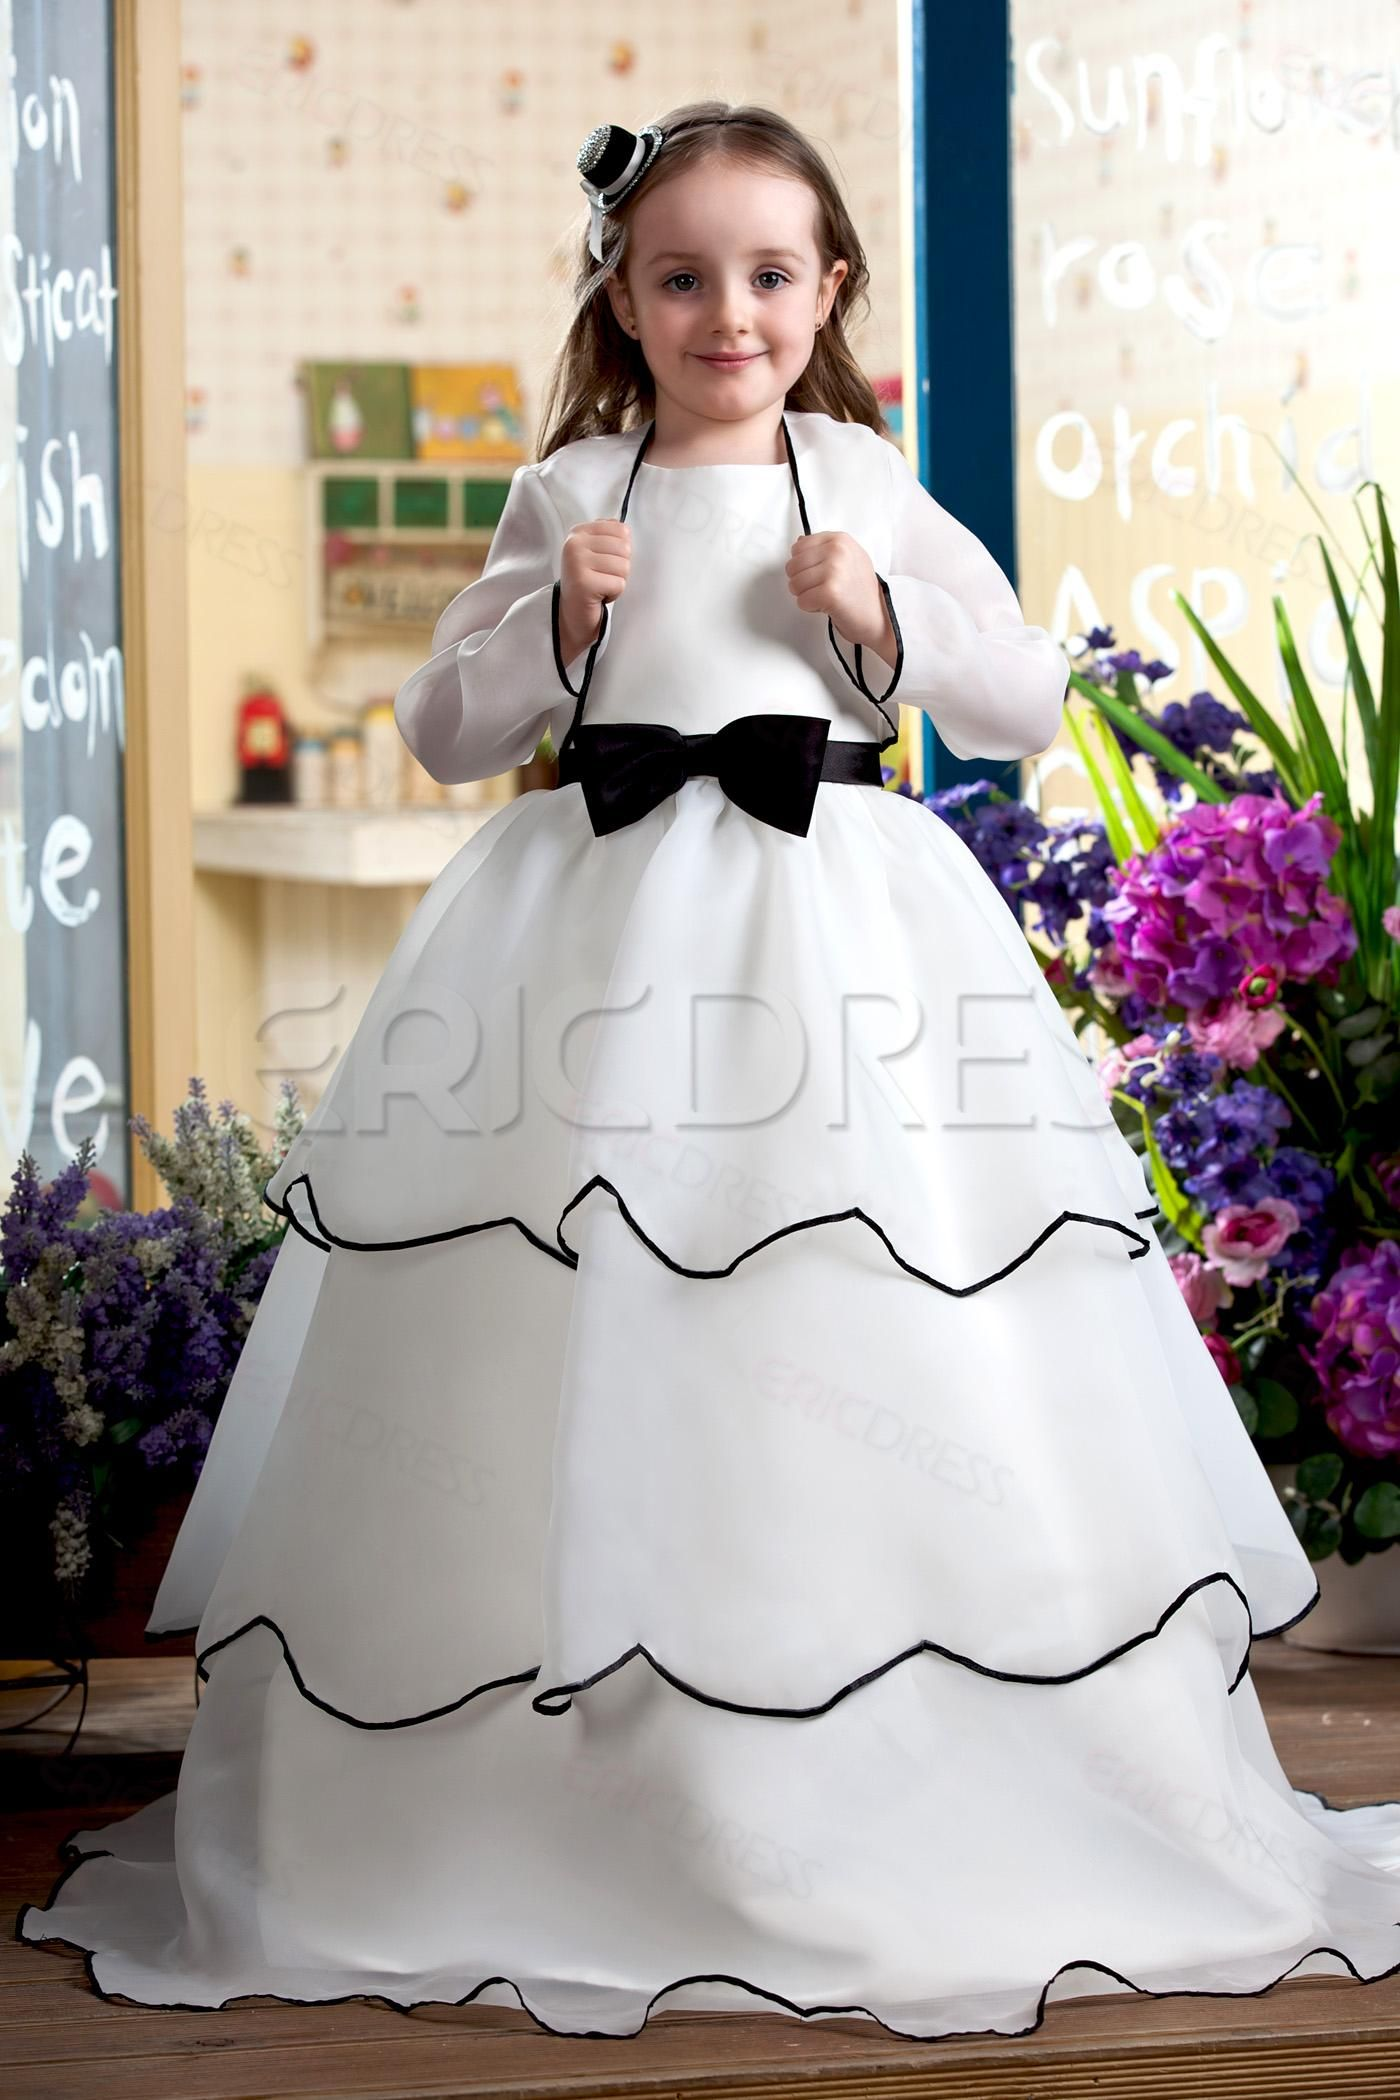 ec4b08e9c7e Classy A-Line Sash and Bow Floor Length Flower Girl Dress With Jacket/Shawl  White Flower Girl Dresses- ericdress.com 10417619